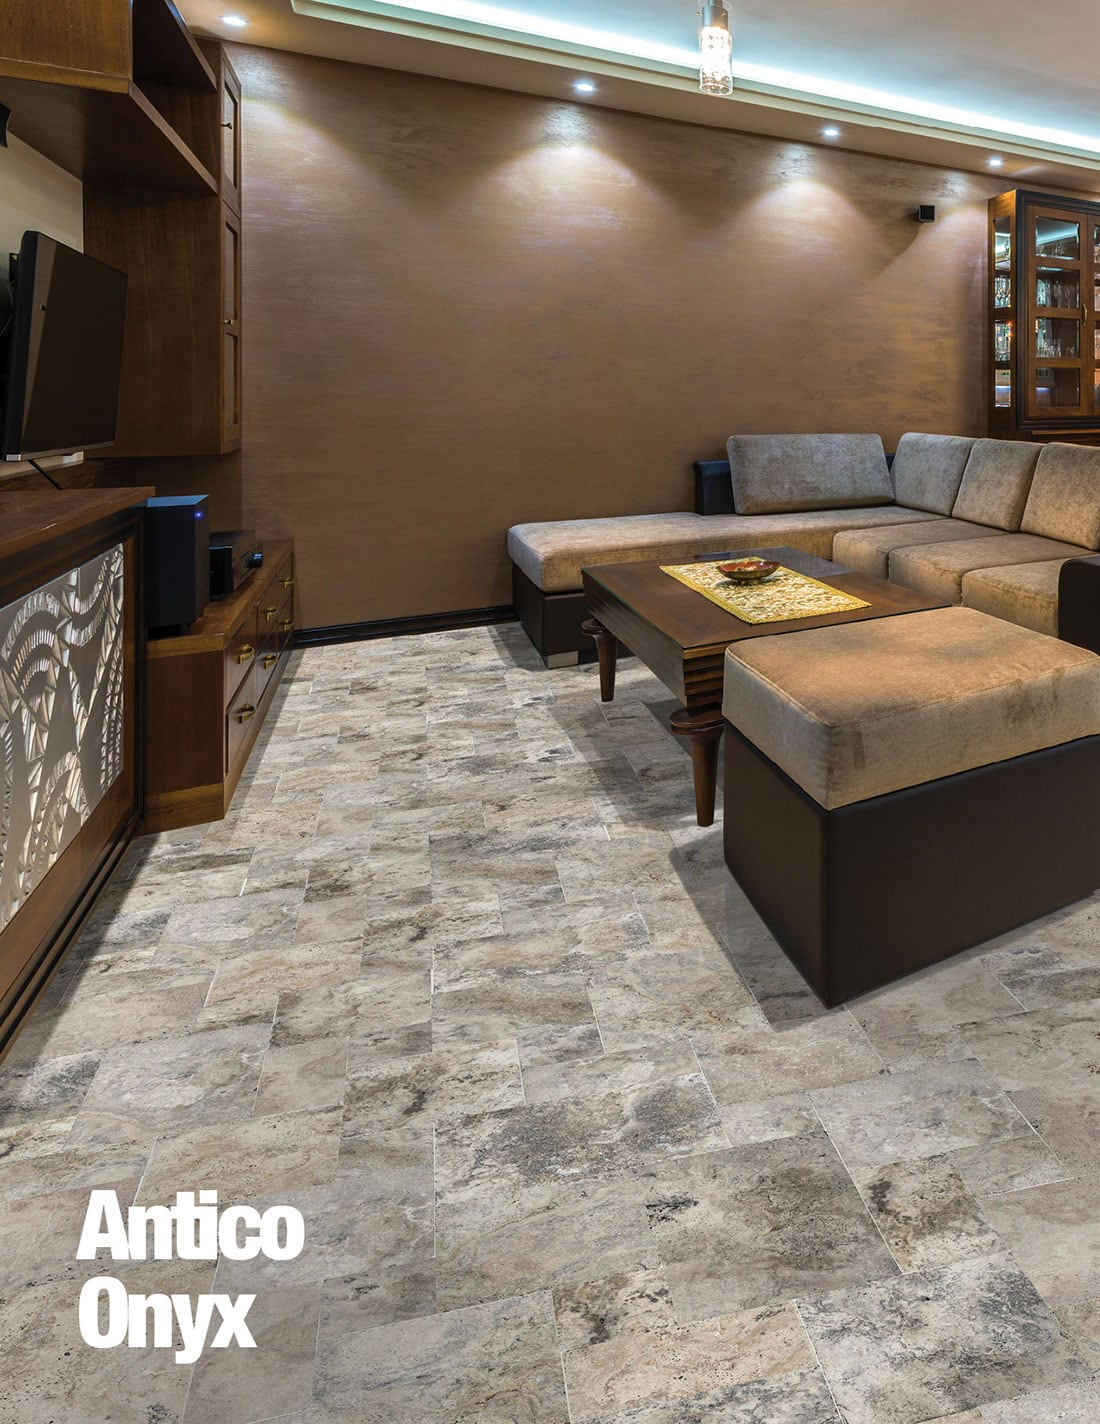 Antico Onyx Travertine